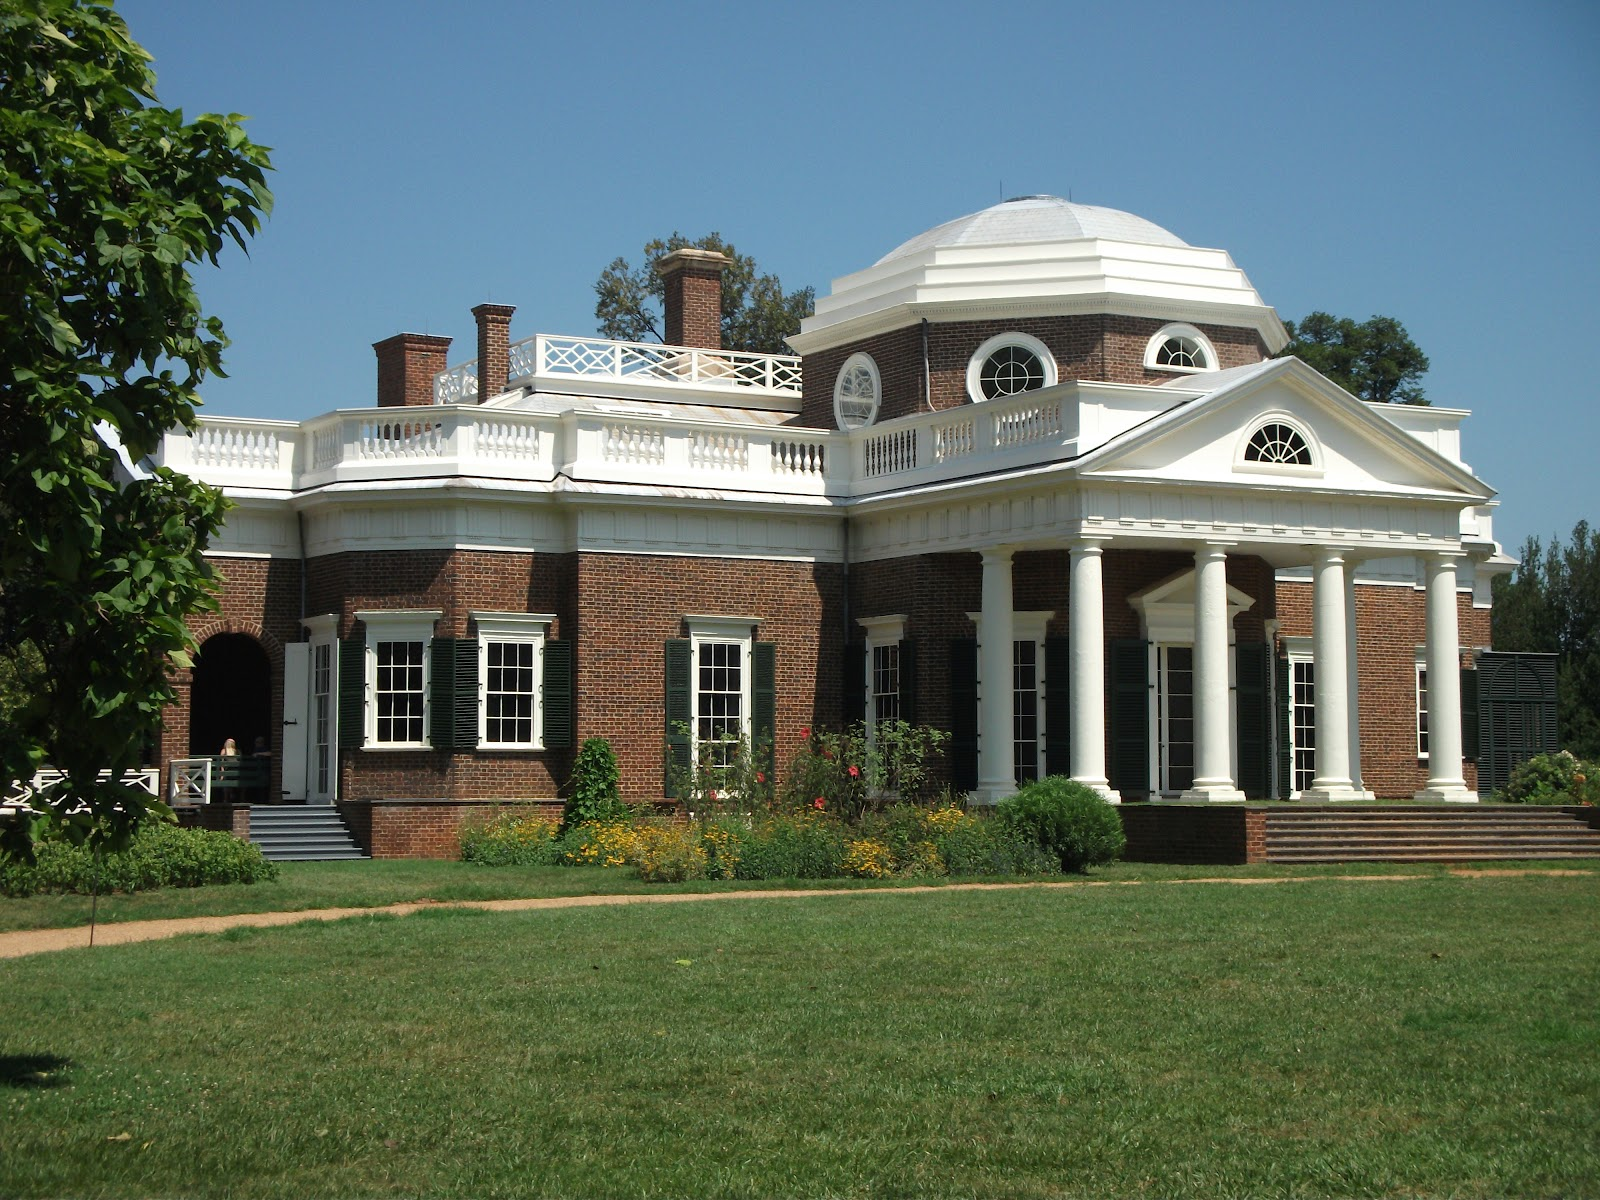 Heritage zen thomas jefferson 39 s monticello wordless for Thomas jefferson house monticello